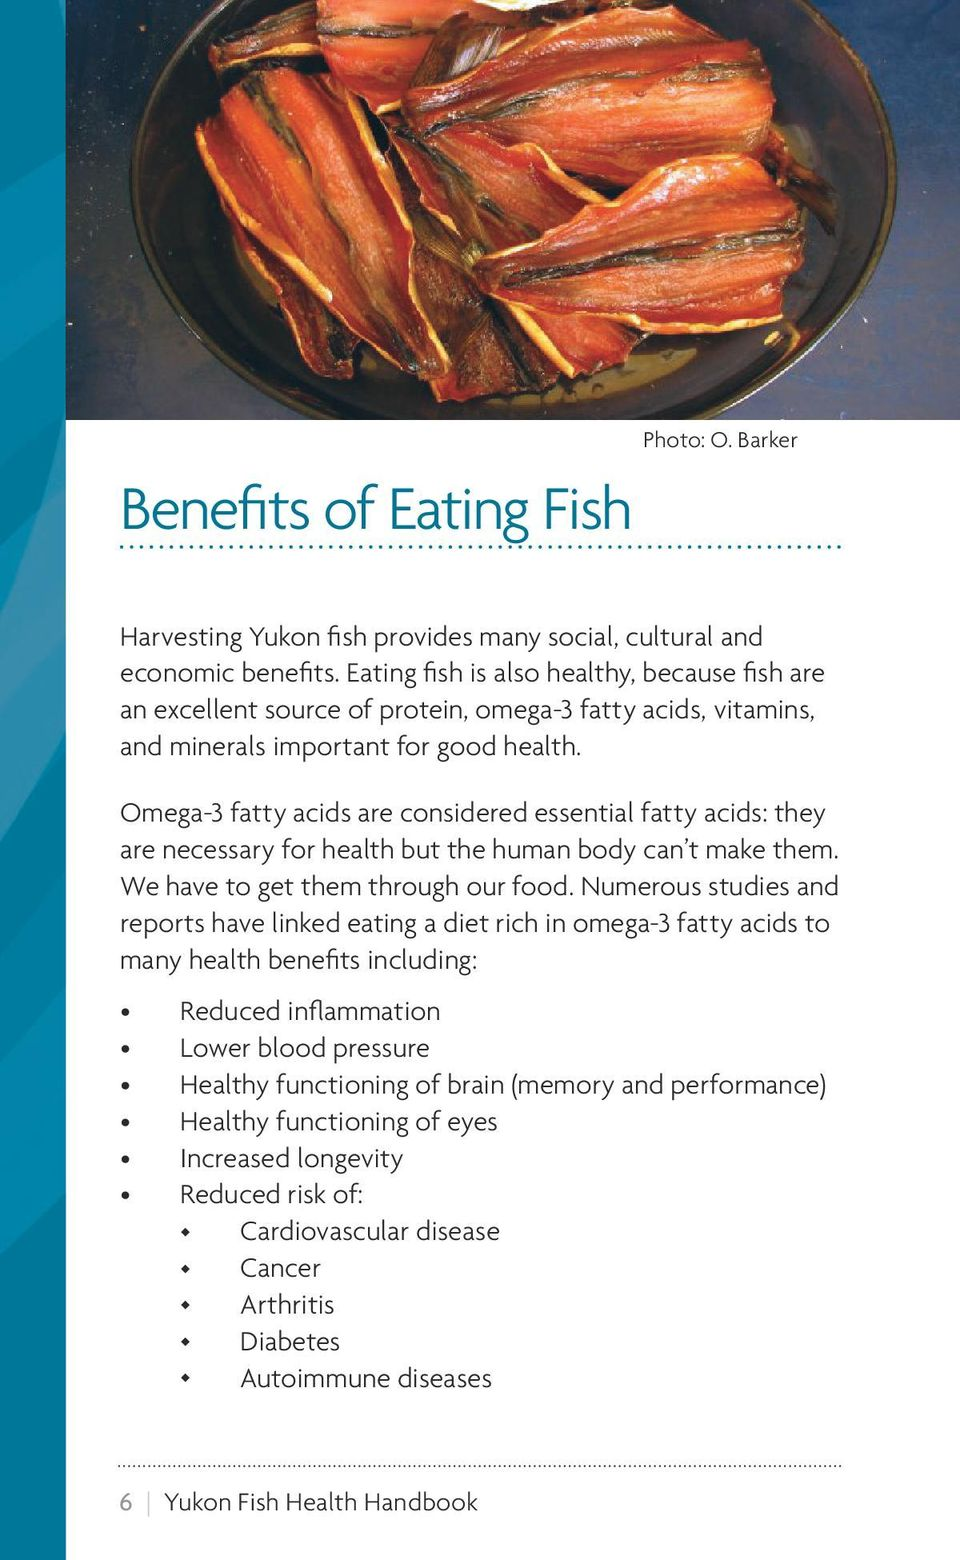 Yukon fish health handbook pdf for Health benefits of fish